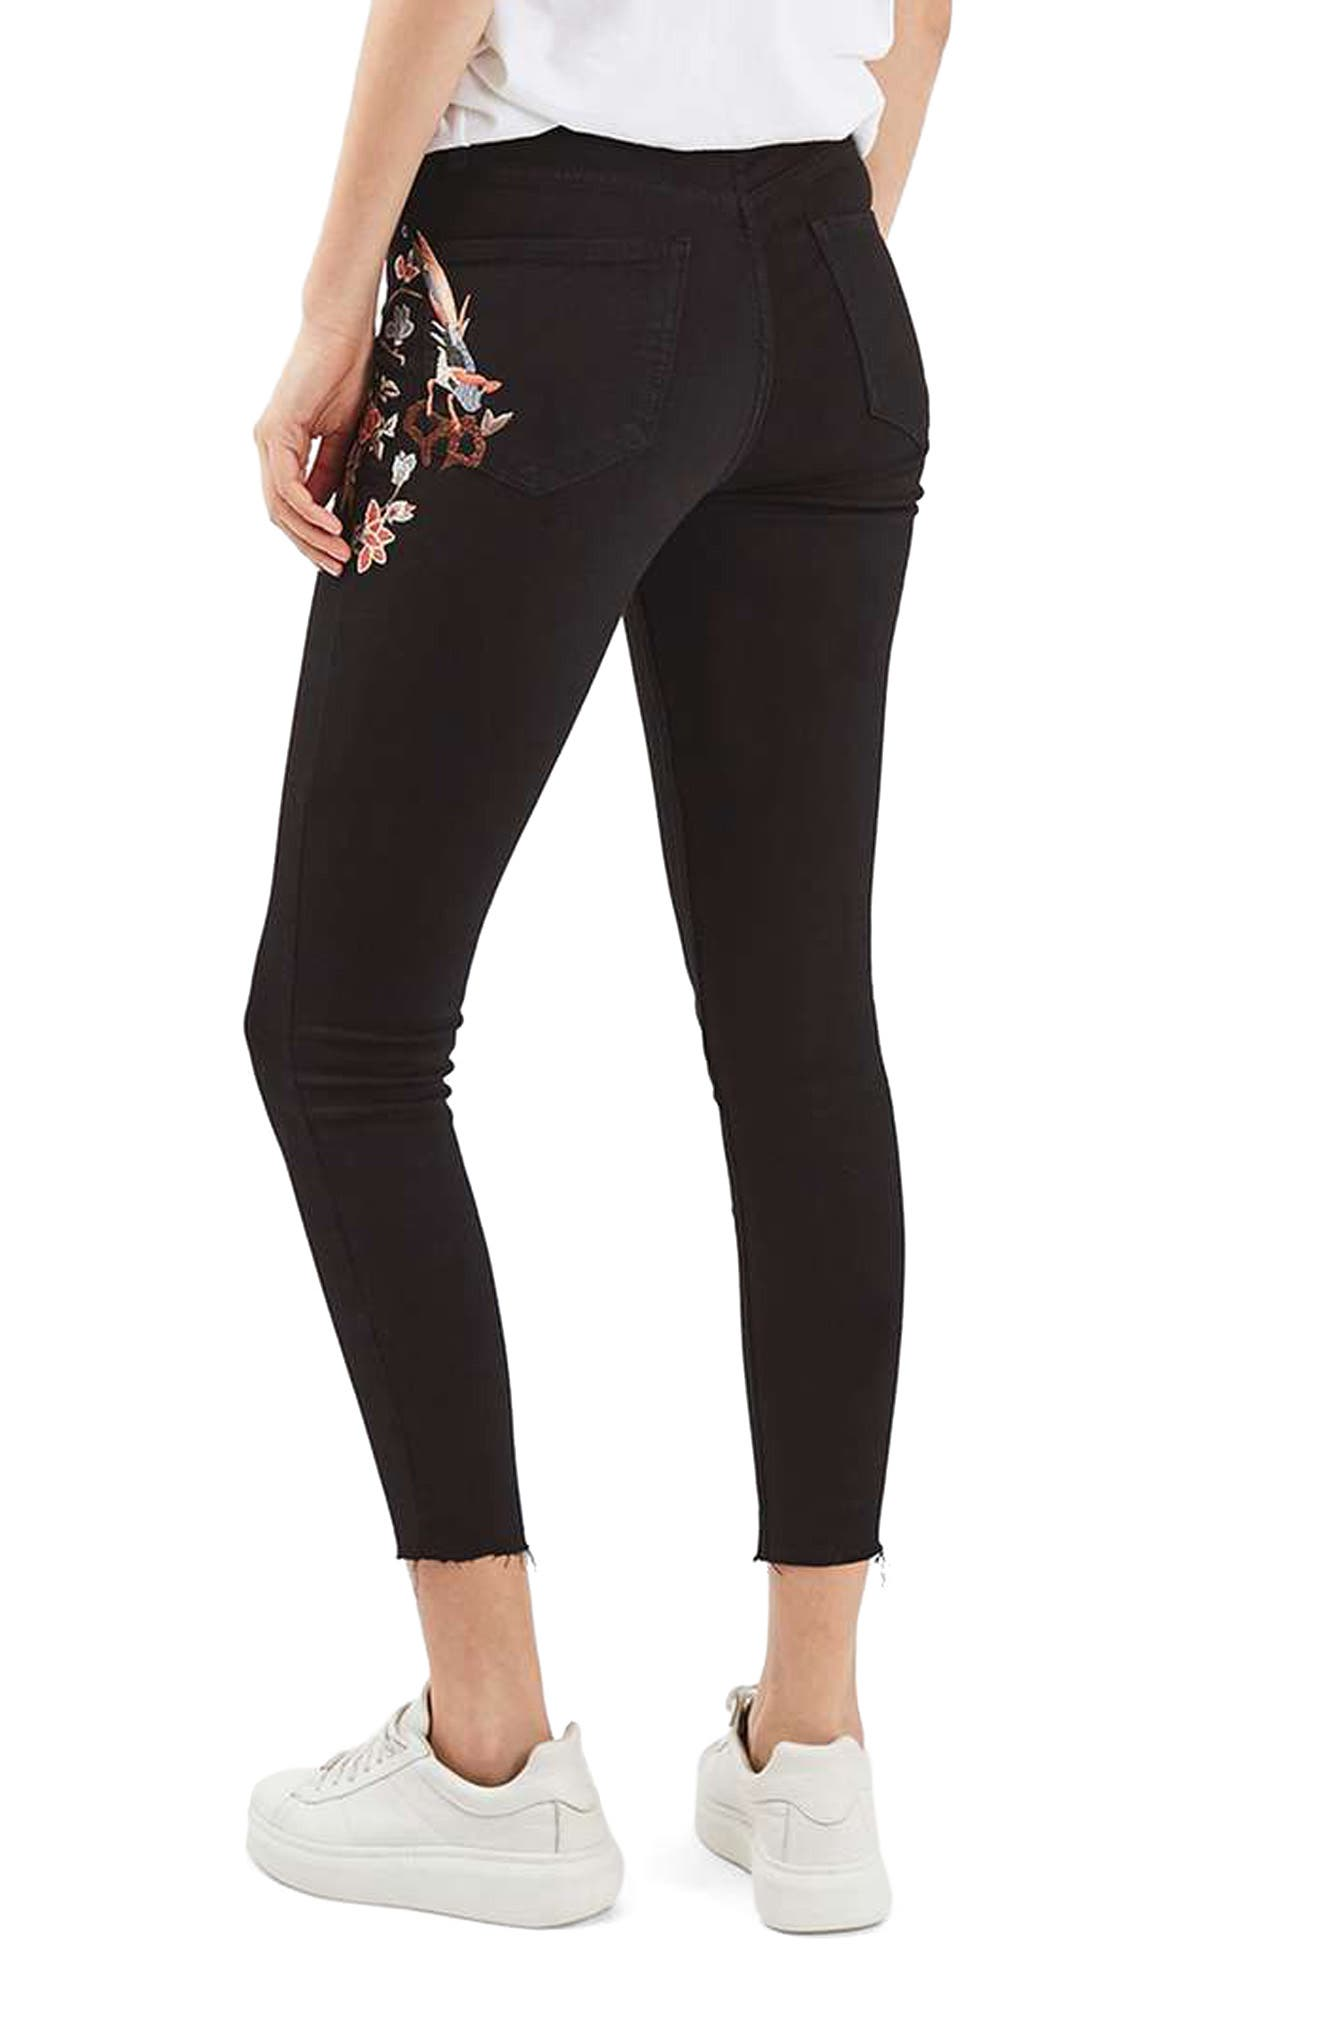 TOPSHOP, Jamie Embroidered Skinny Jeans, Alternate thumbnail 2, color, 001